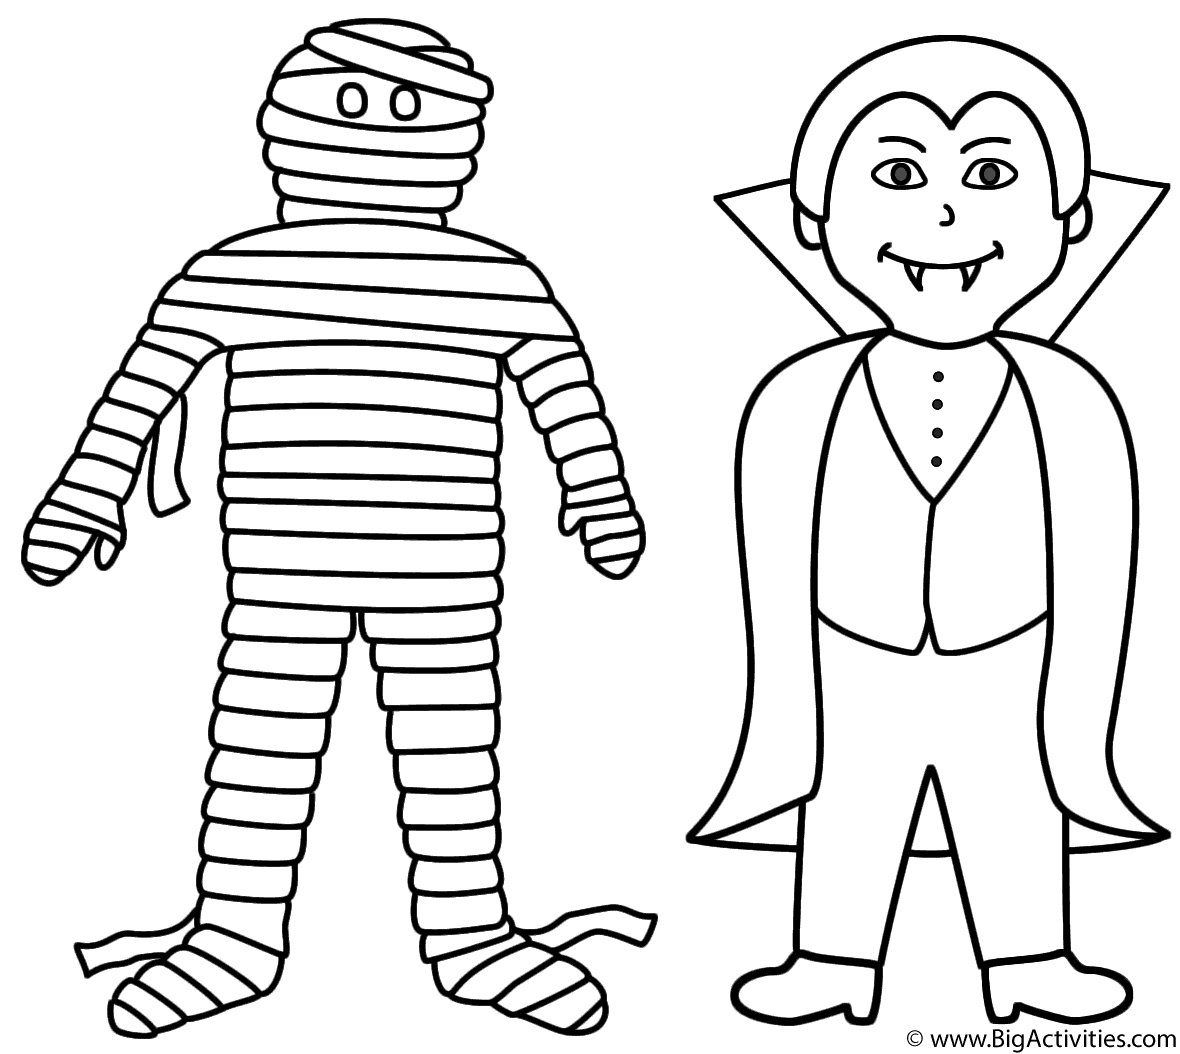 mummy coloring page mummy with vampire coloring page halloween coloring page mummy